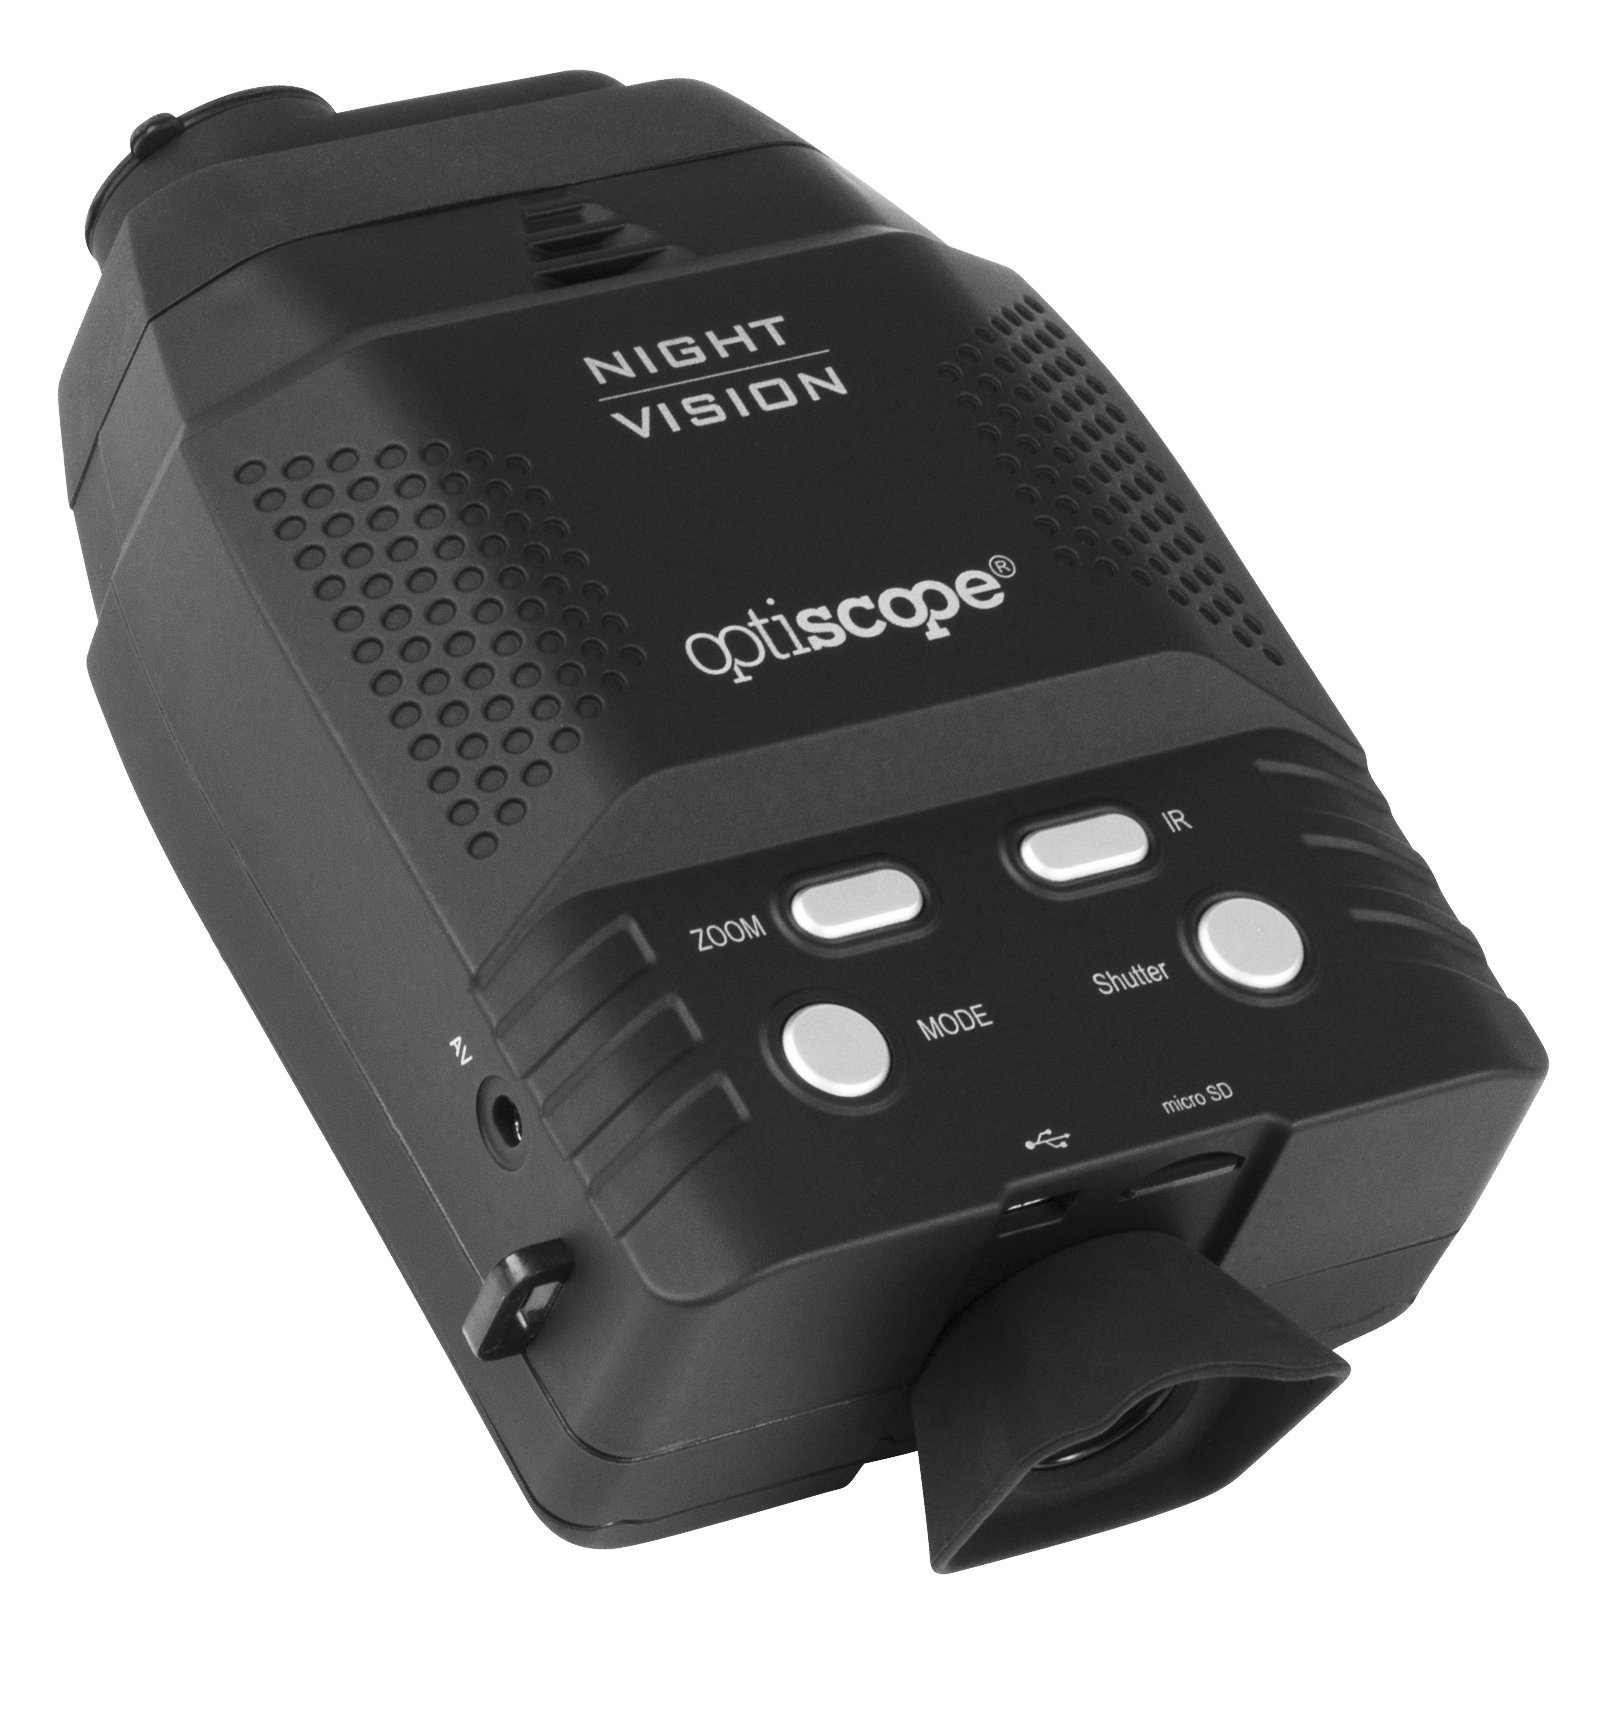 Premium Night Vision Monocular By OPTISCOPE - 328ft/100m Infrared Illuminator Range - 3x Magnification - Ideal For Surveillance & Observation - Easy Image & Video Capture - 4GB microSD - Black by OPTISCOPE